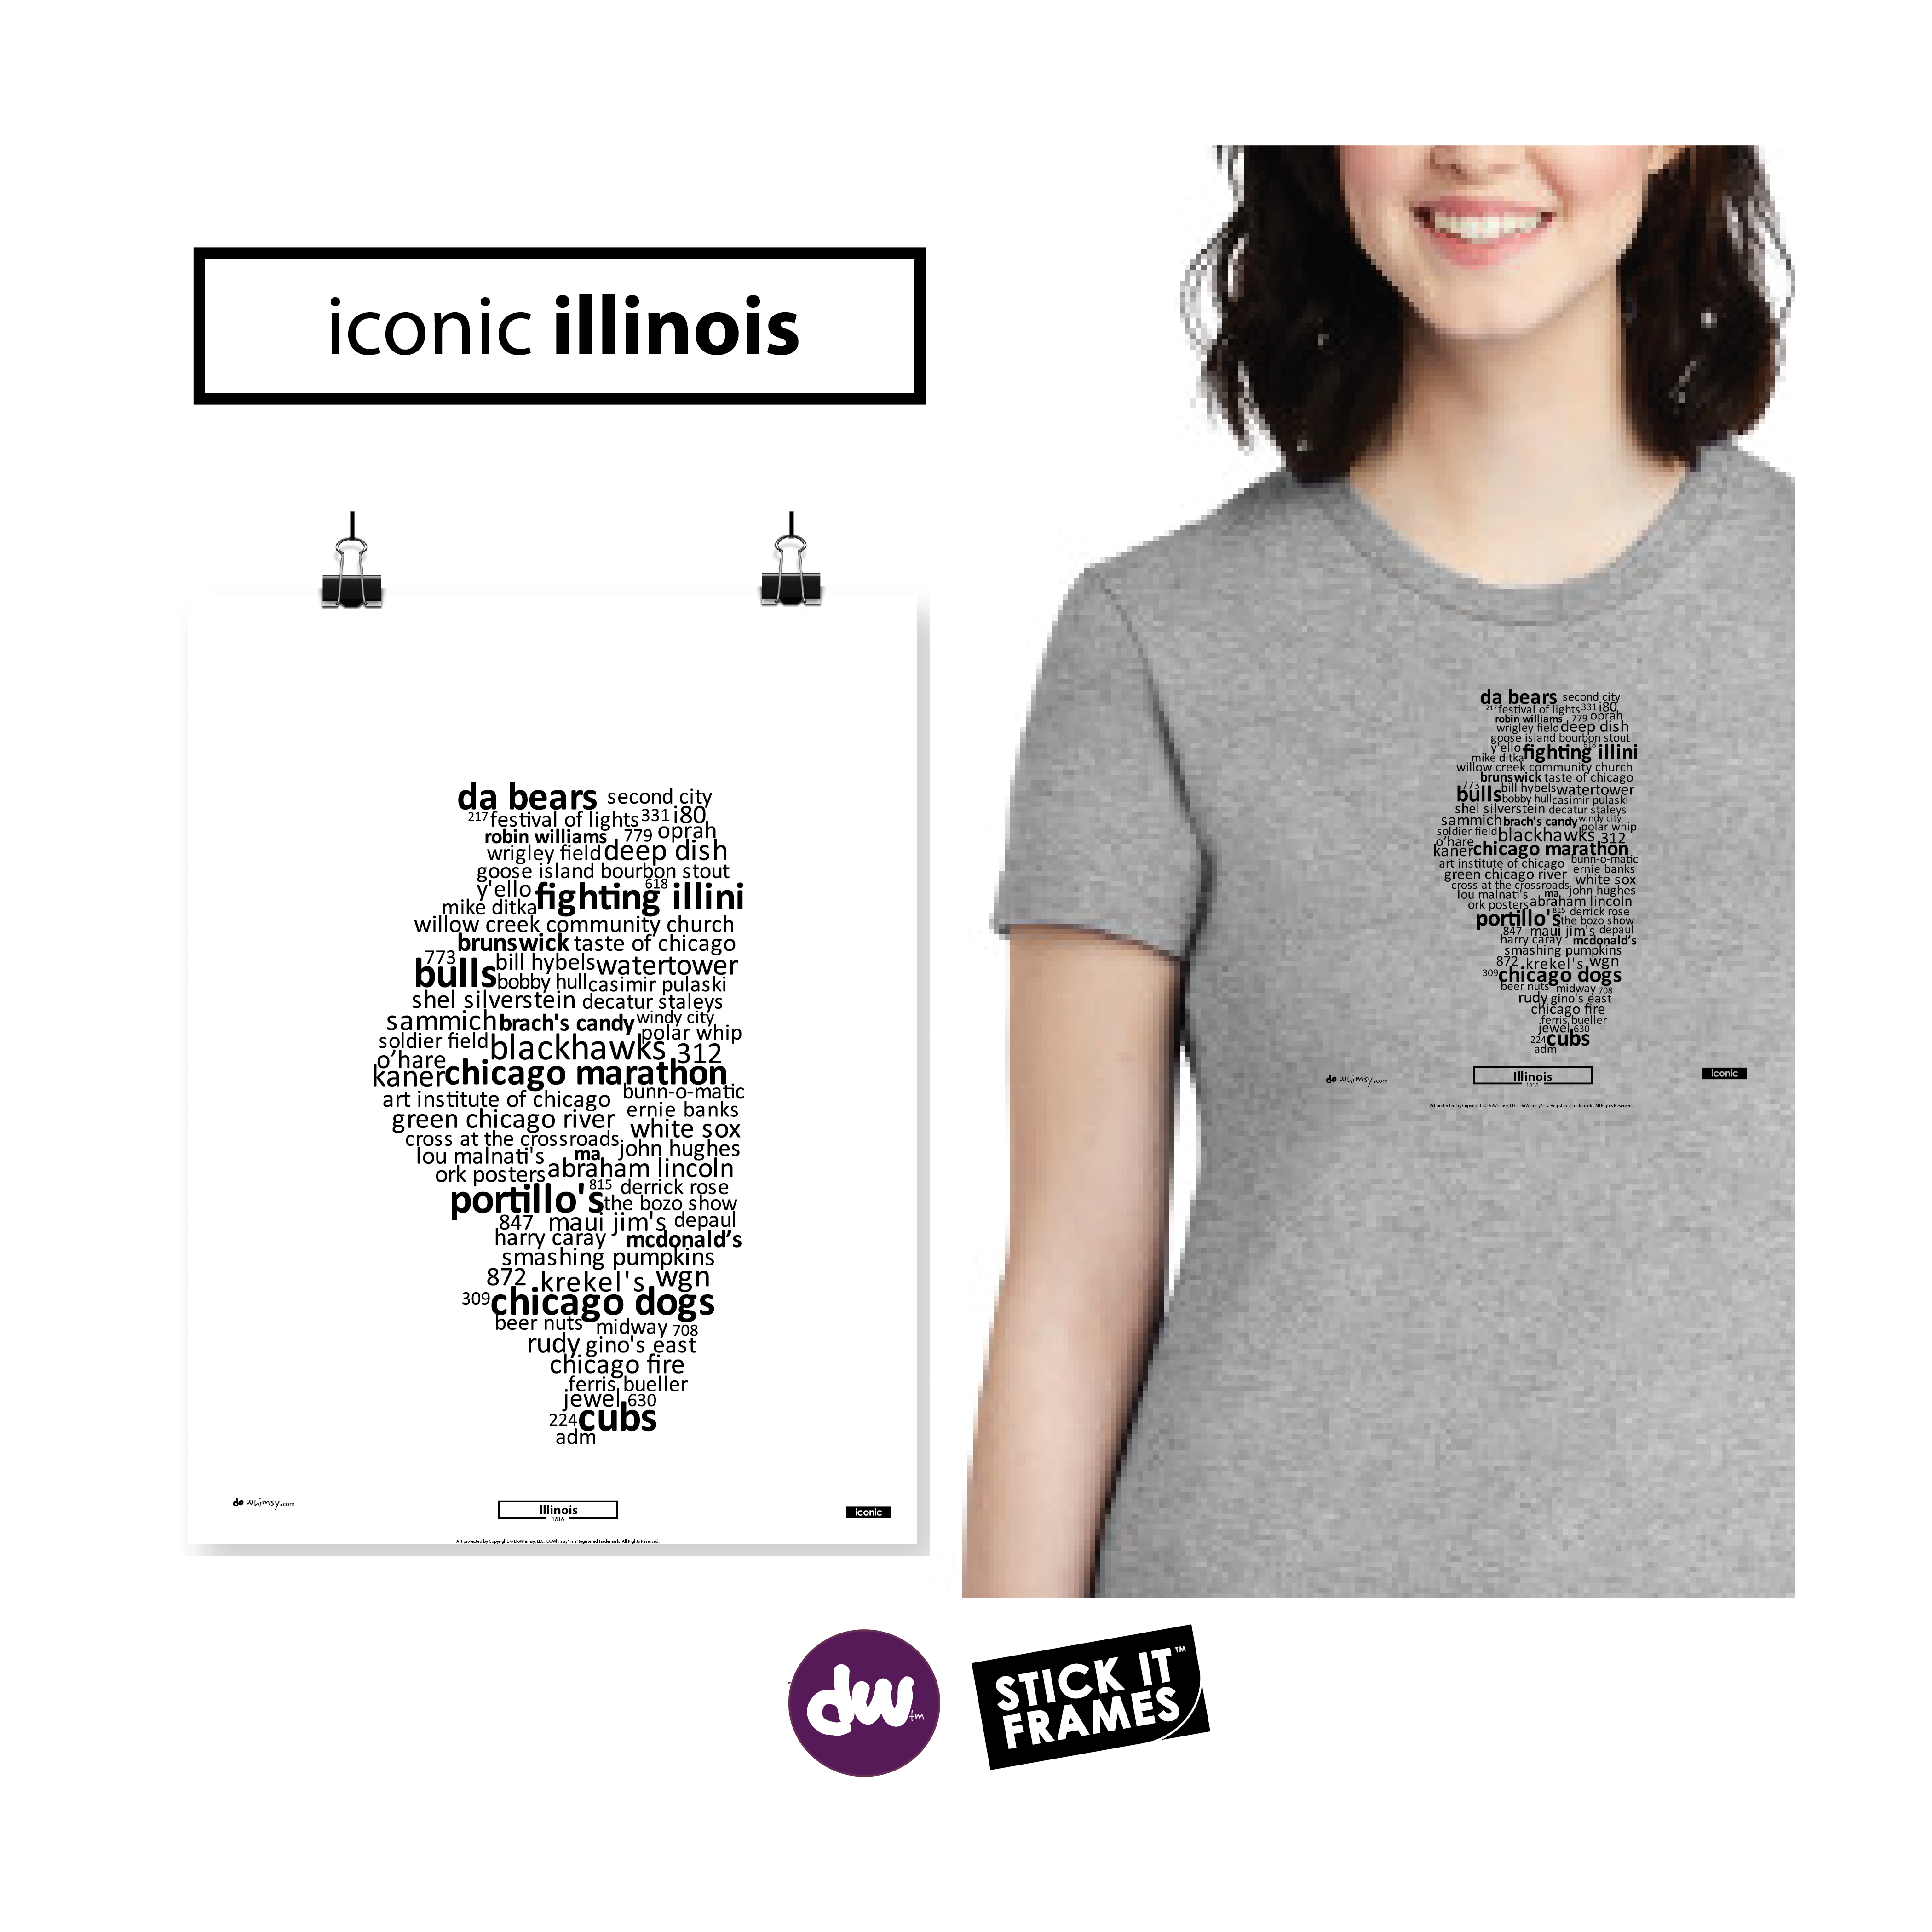 Iconic Illinois - All Products (Shirt, Art, Frames (R))